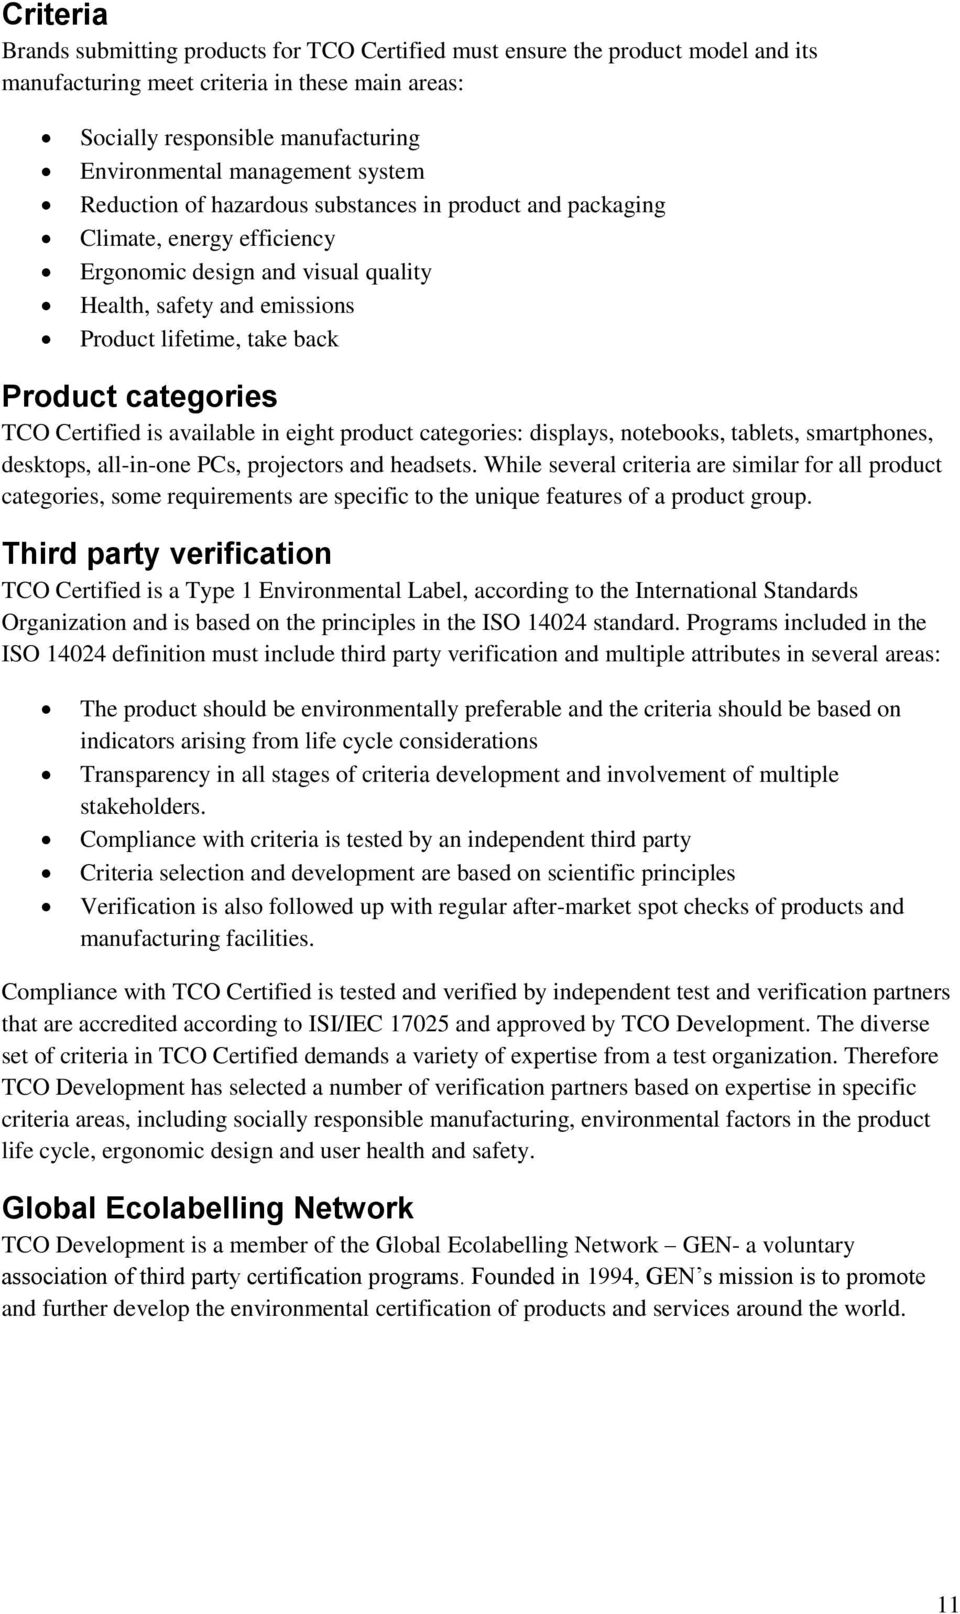 Product categories TCO Certified is available in eight product categories: displays, notebooks, tablets, smartphones, desktops, all-in-one PCs, projectors and headsets.